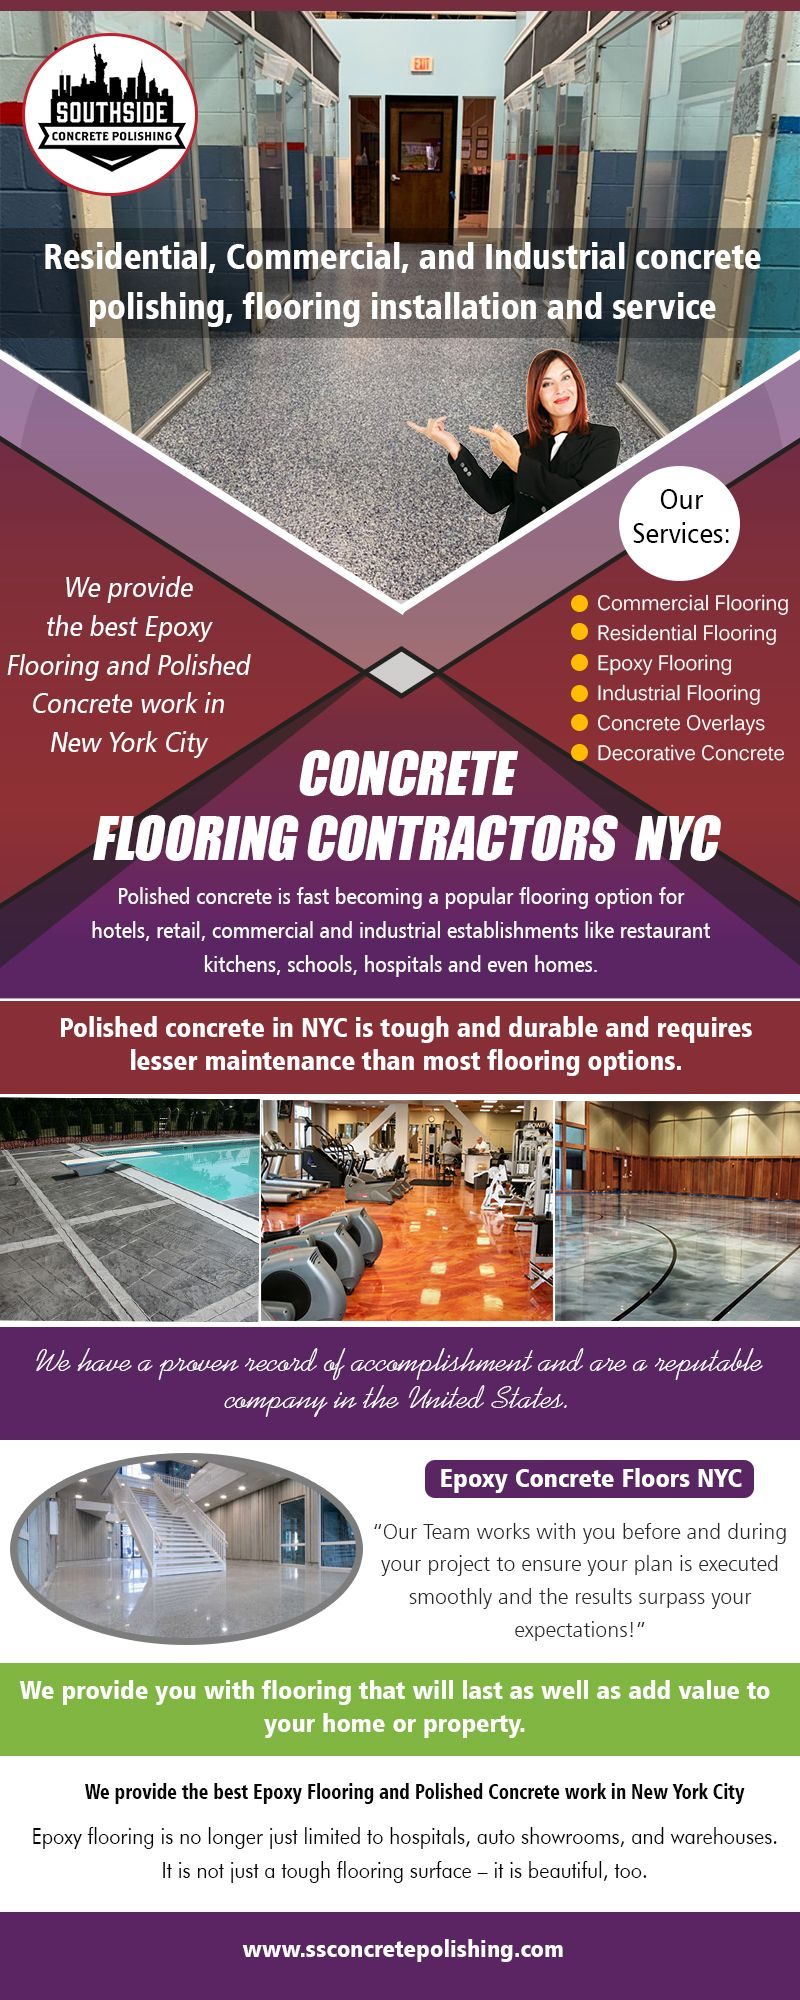 Pin by Polished concreteNYC on Epoxy Concrete Floors nyc